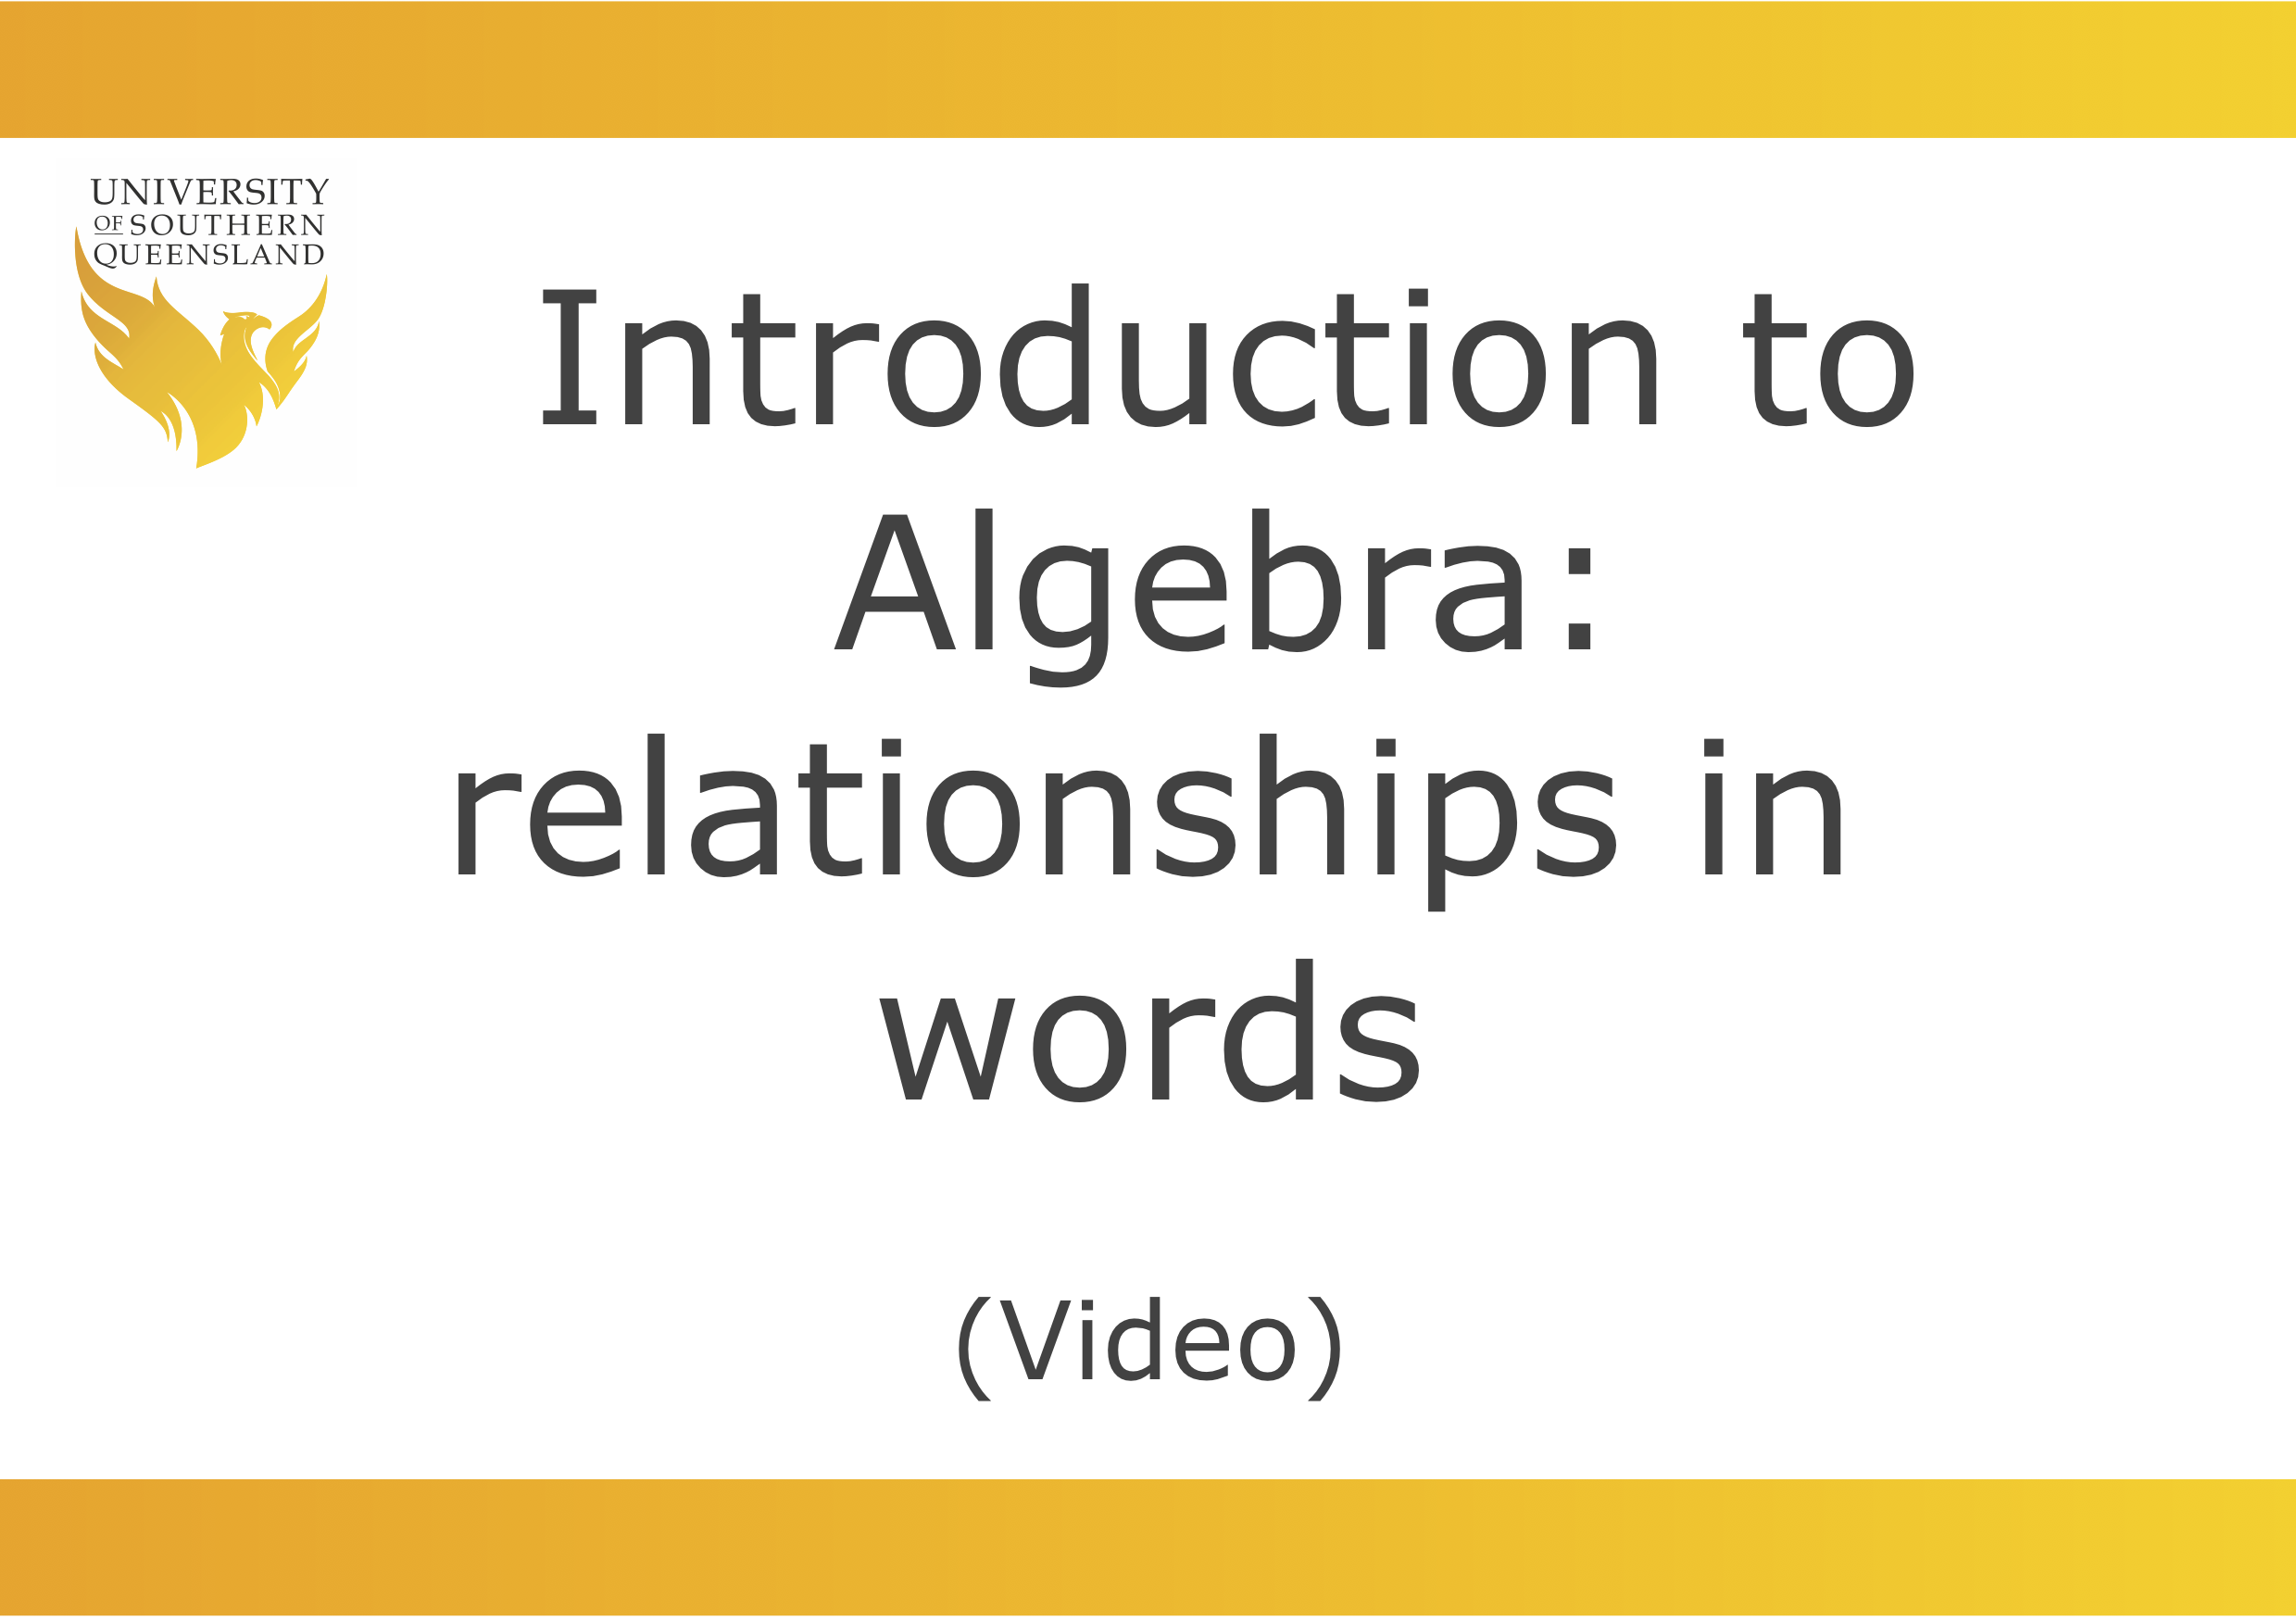 Click on the image to play the Introduction to algebra: relationships in words video.